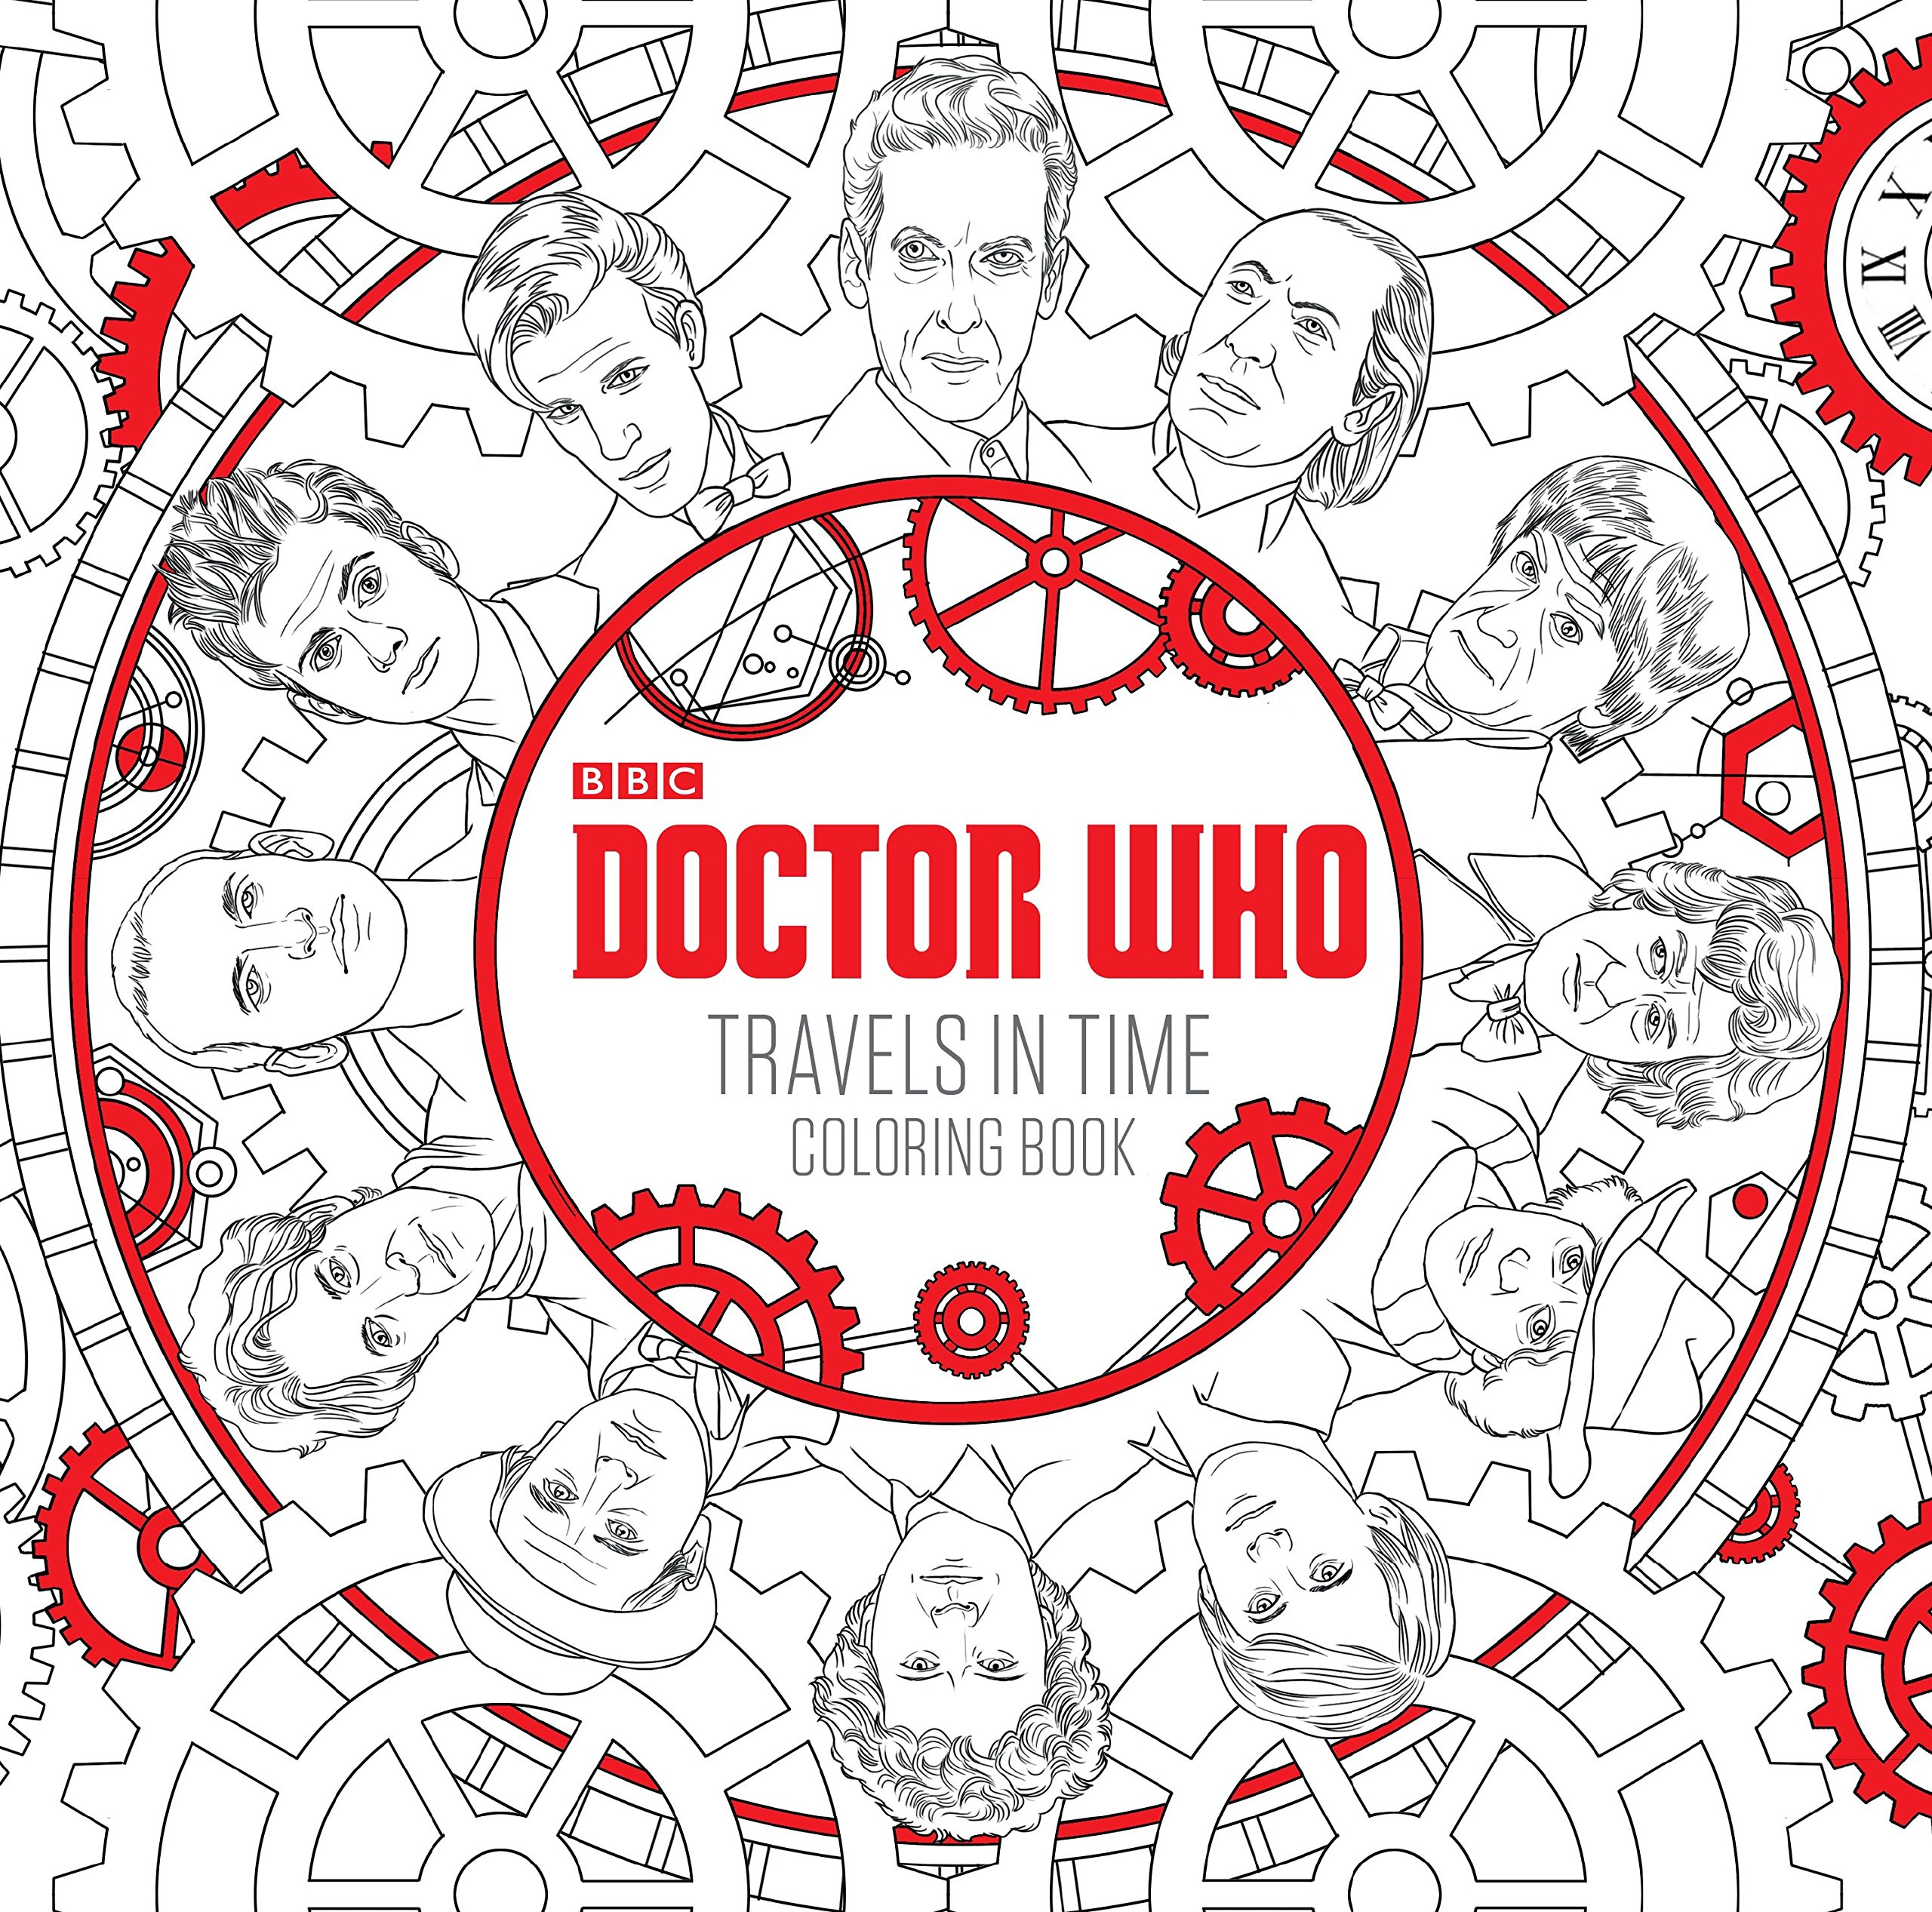 Doctor Who Travels in Time Coloring Book ebook